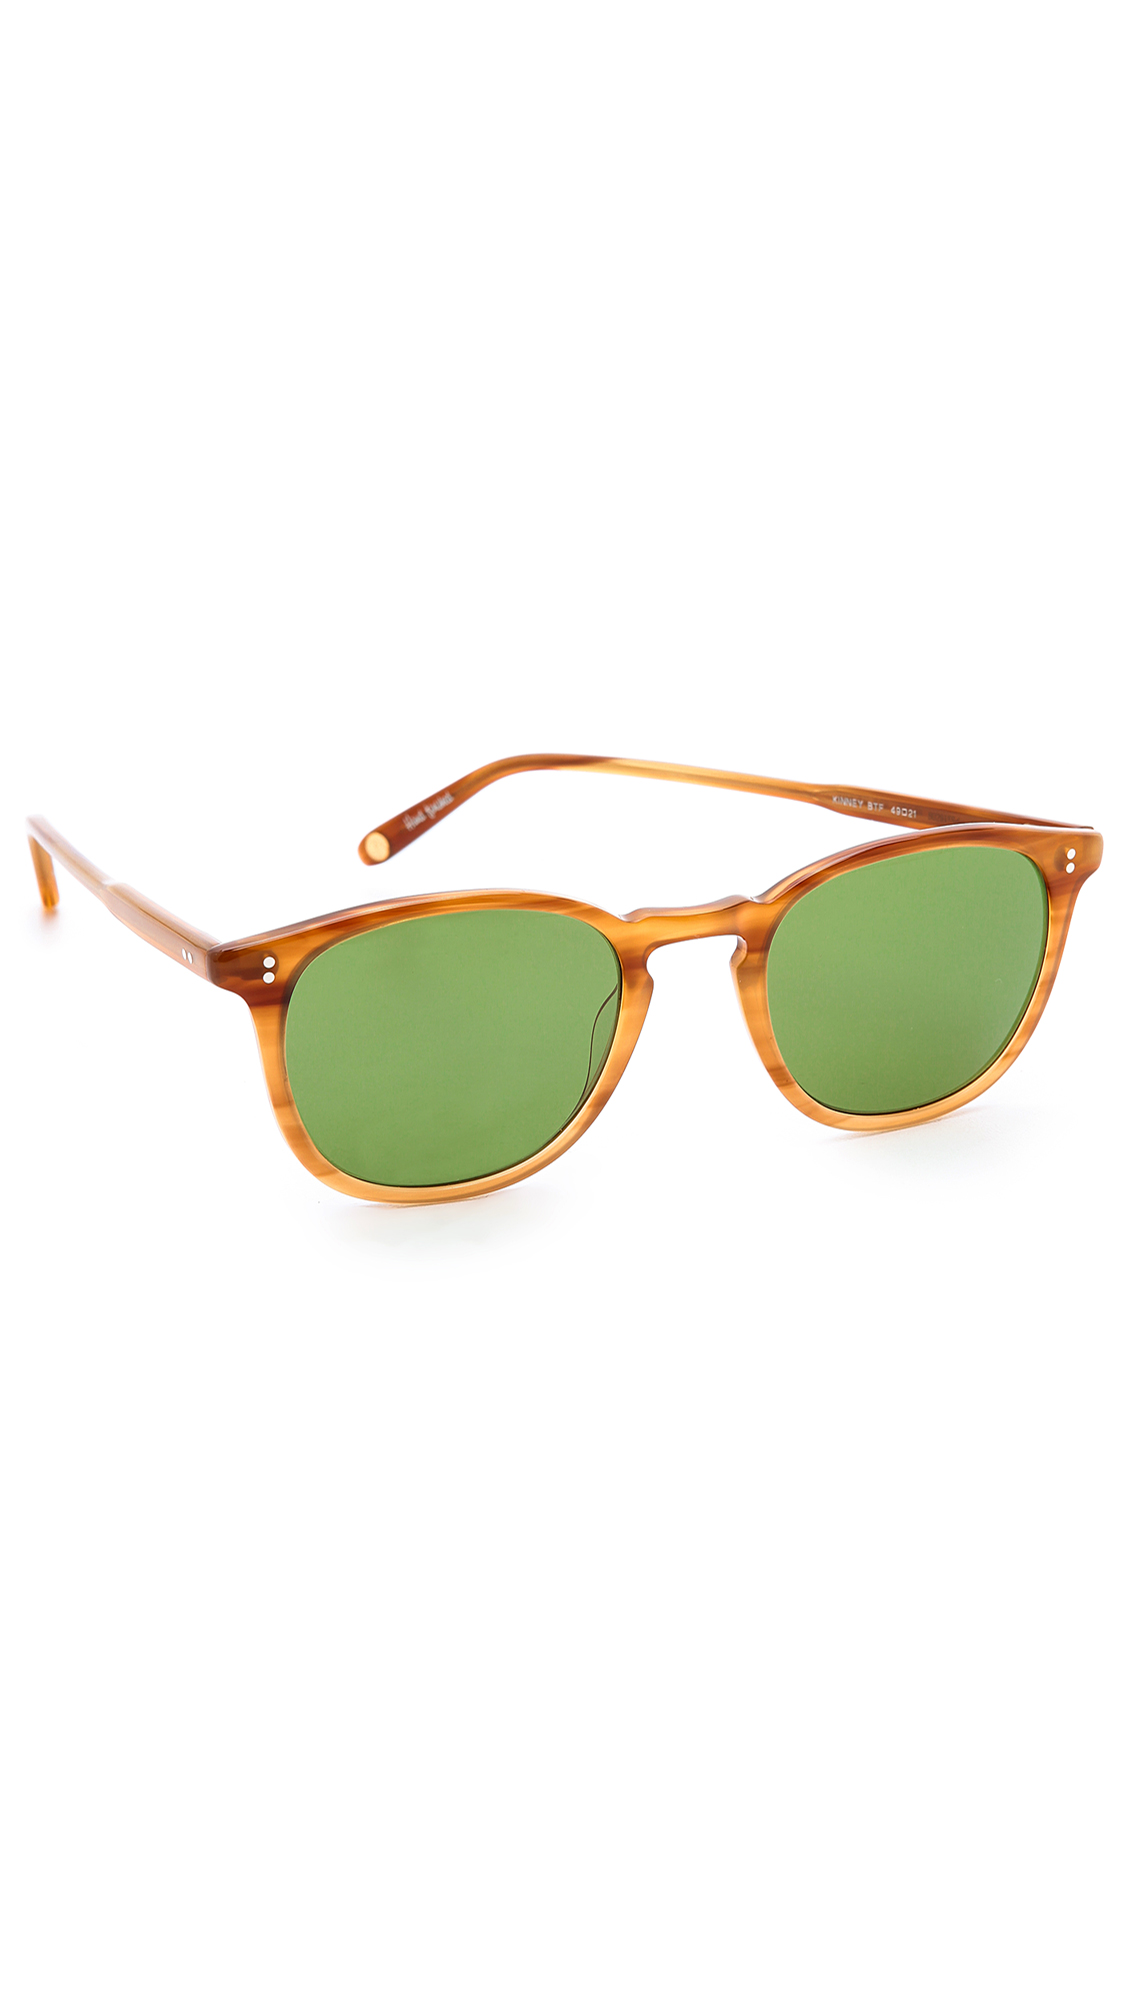 GARRETT LEIGHT Kinney Sunglasses - Blonde Tortoise Fade/Green